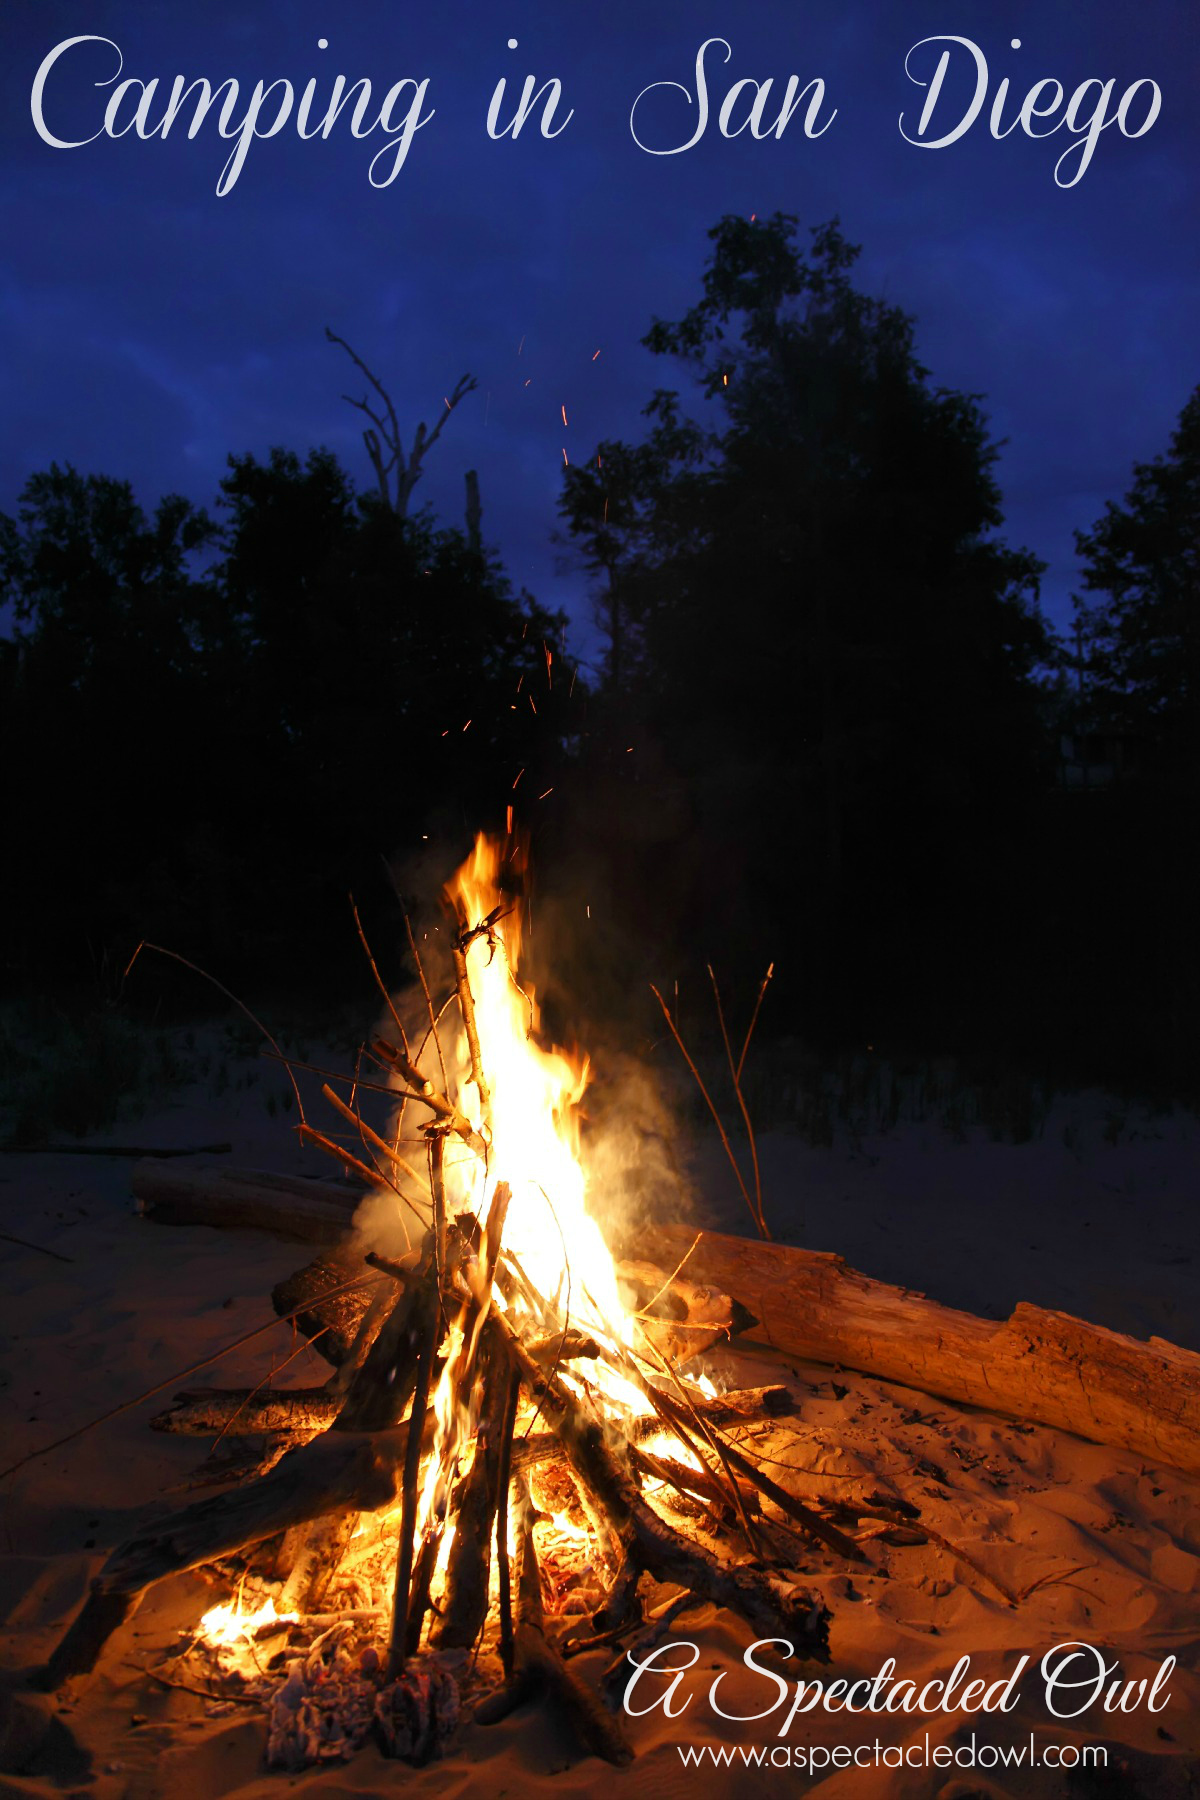 Camping in San Diego is not like camping in the Midwest. You won't be getting away with $7 a night camping spots near the beach. It's more like $40, on the cheaper end. If you're going for a budget vacation, though, camping in San Diego is a much cheaper alternative to staying in a hotel!